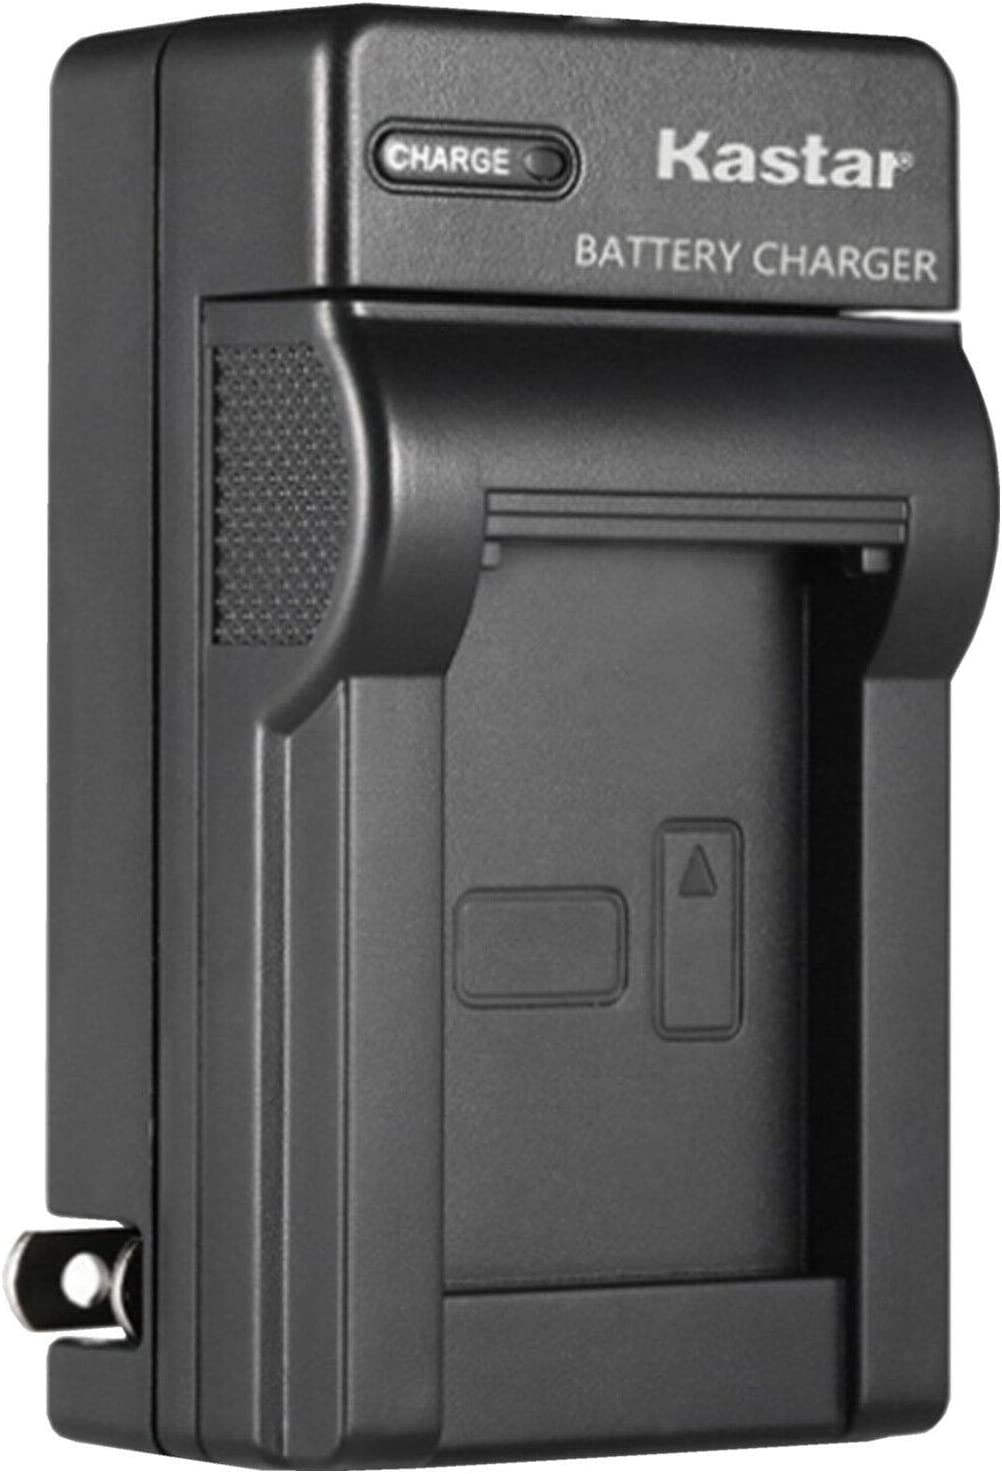 Kastar AC Wall Battery Charger security BP-DC17 Ranking TOP9 Leica for Replacement Lit